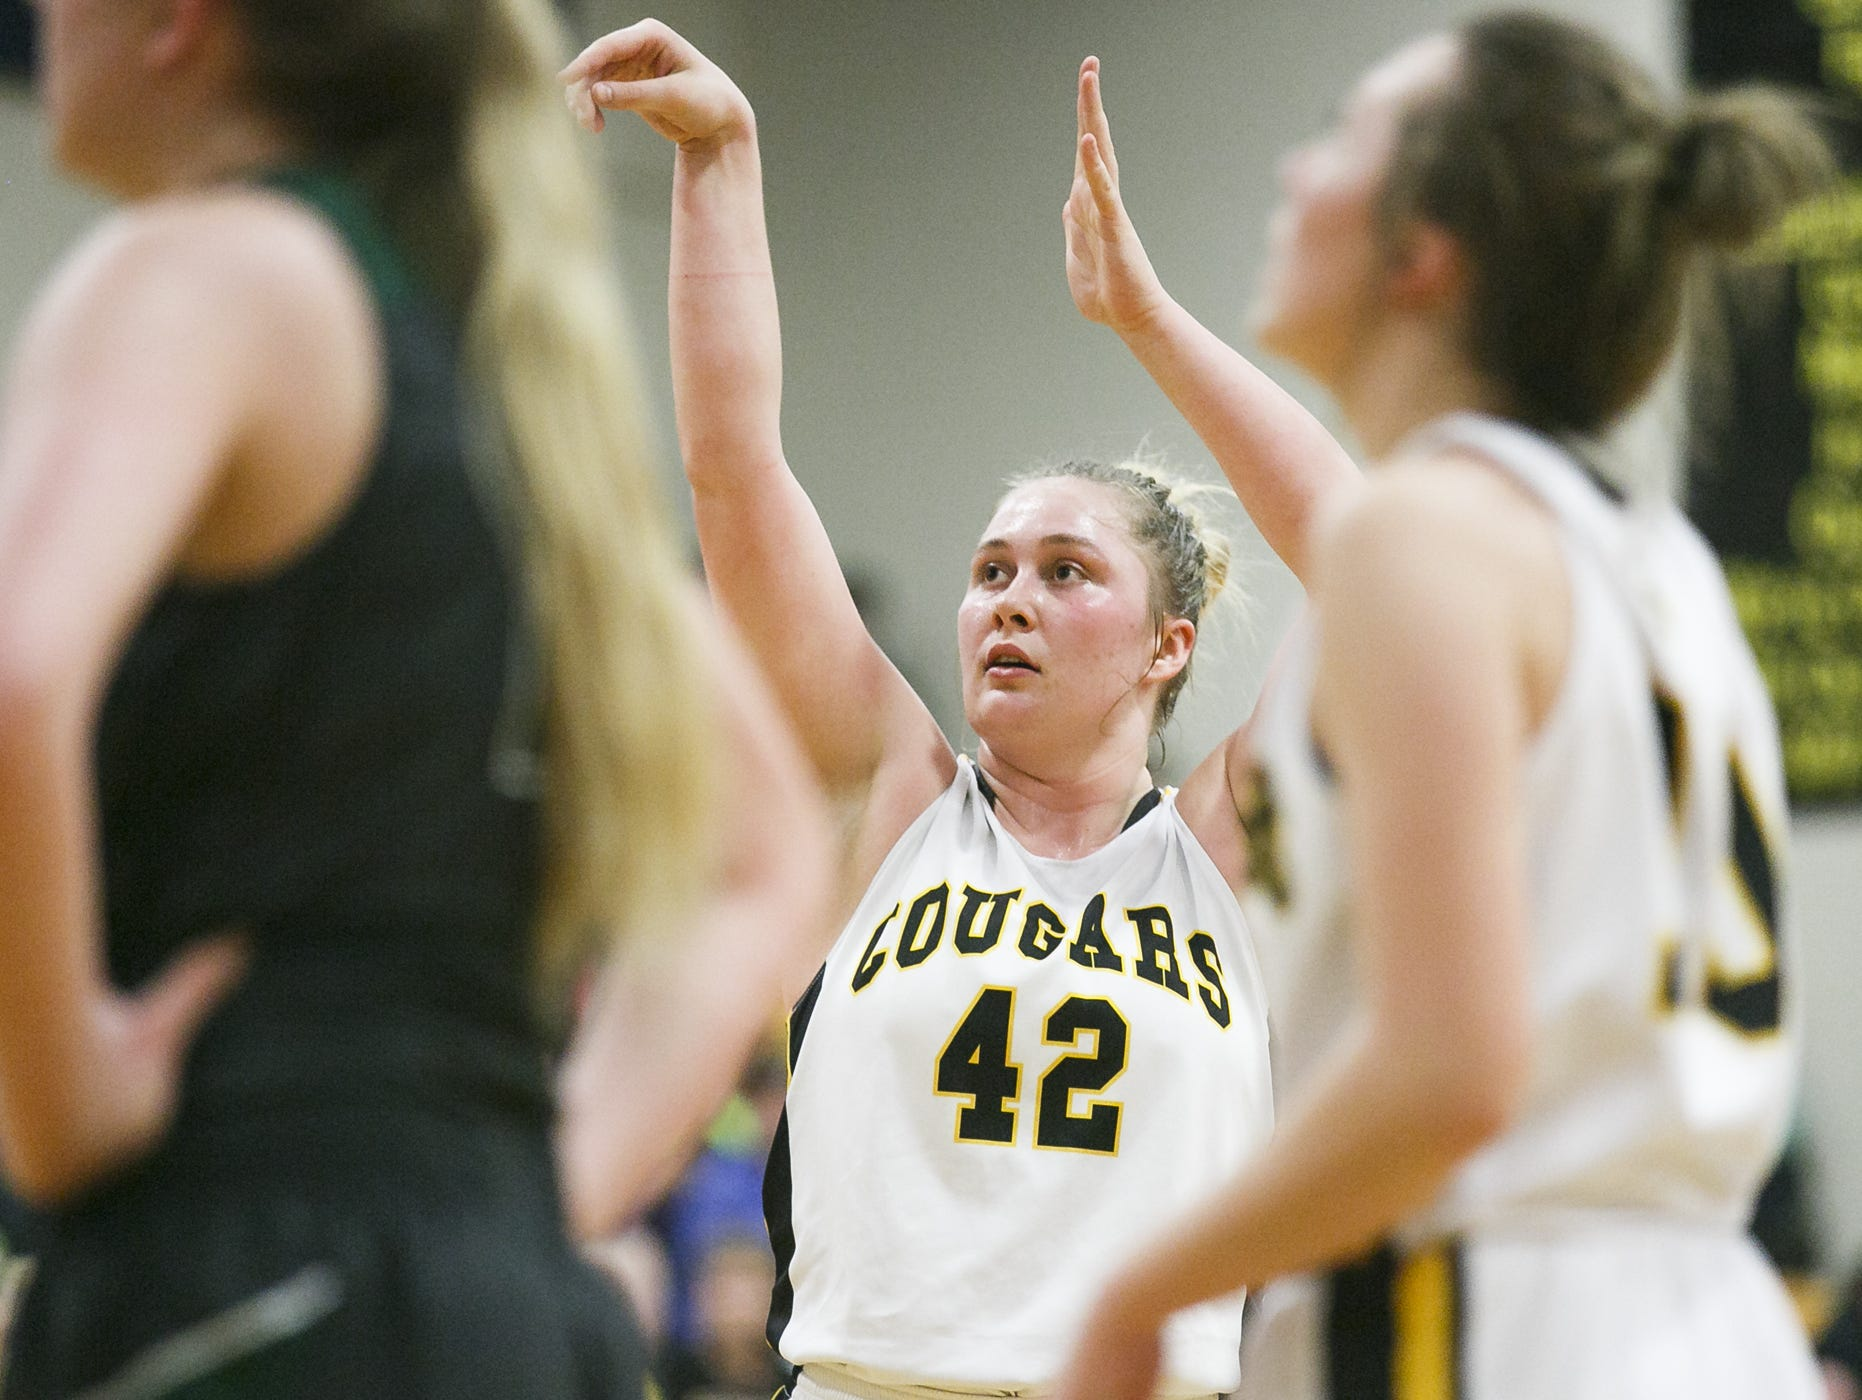 Cascade's Halle Wright (42) shoots a free throw in a game against North Marion on Tuesday, Feb. 21, 2017, at Cascade High School. Cascade won the game 53-37, sweeping the Oregon West Conference for the third consecutive year.